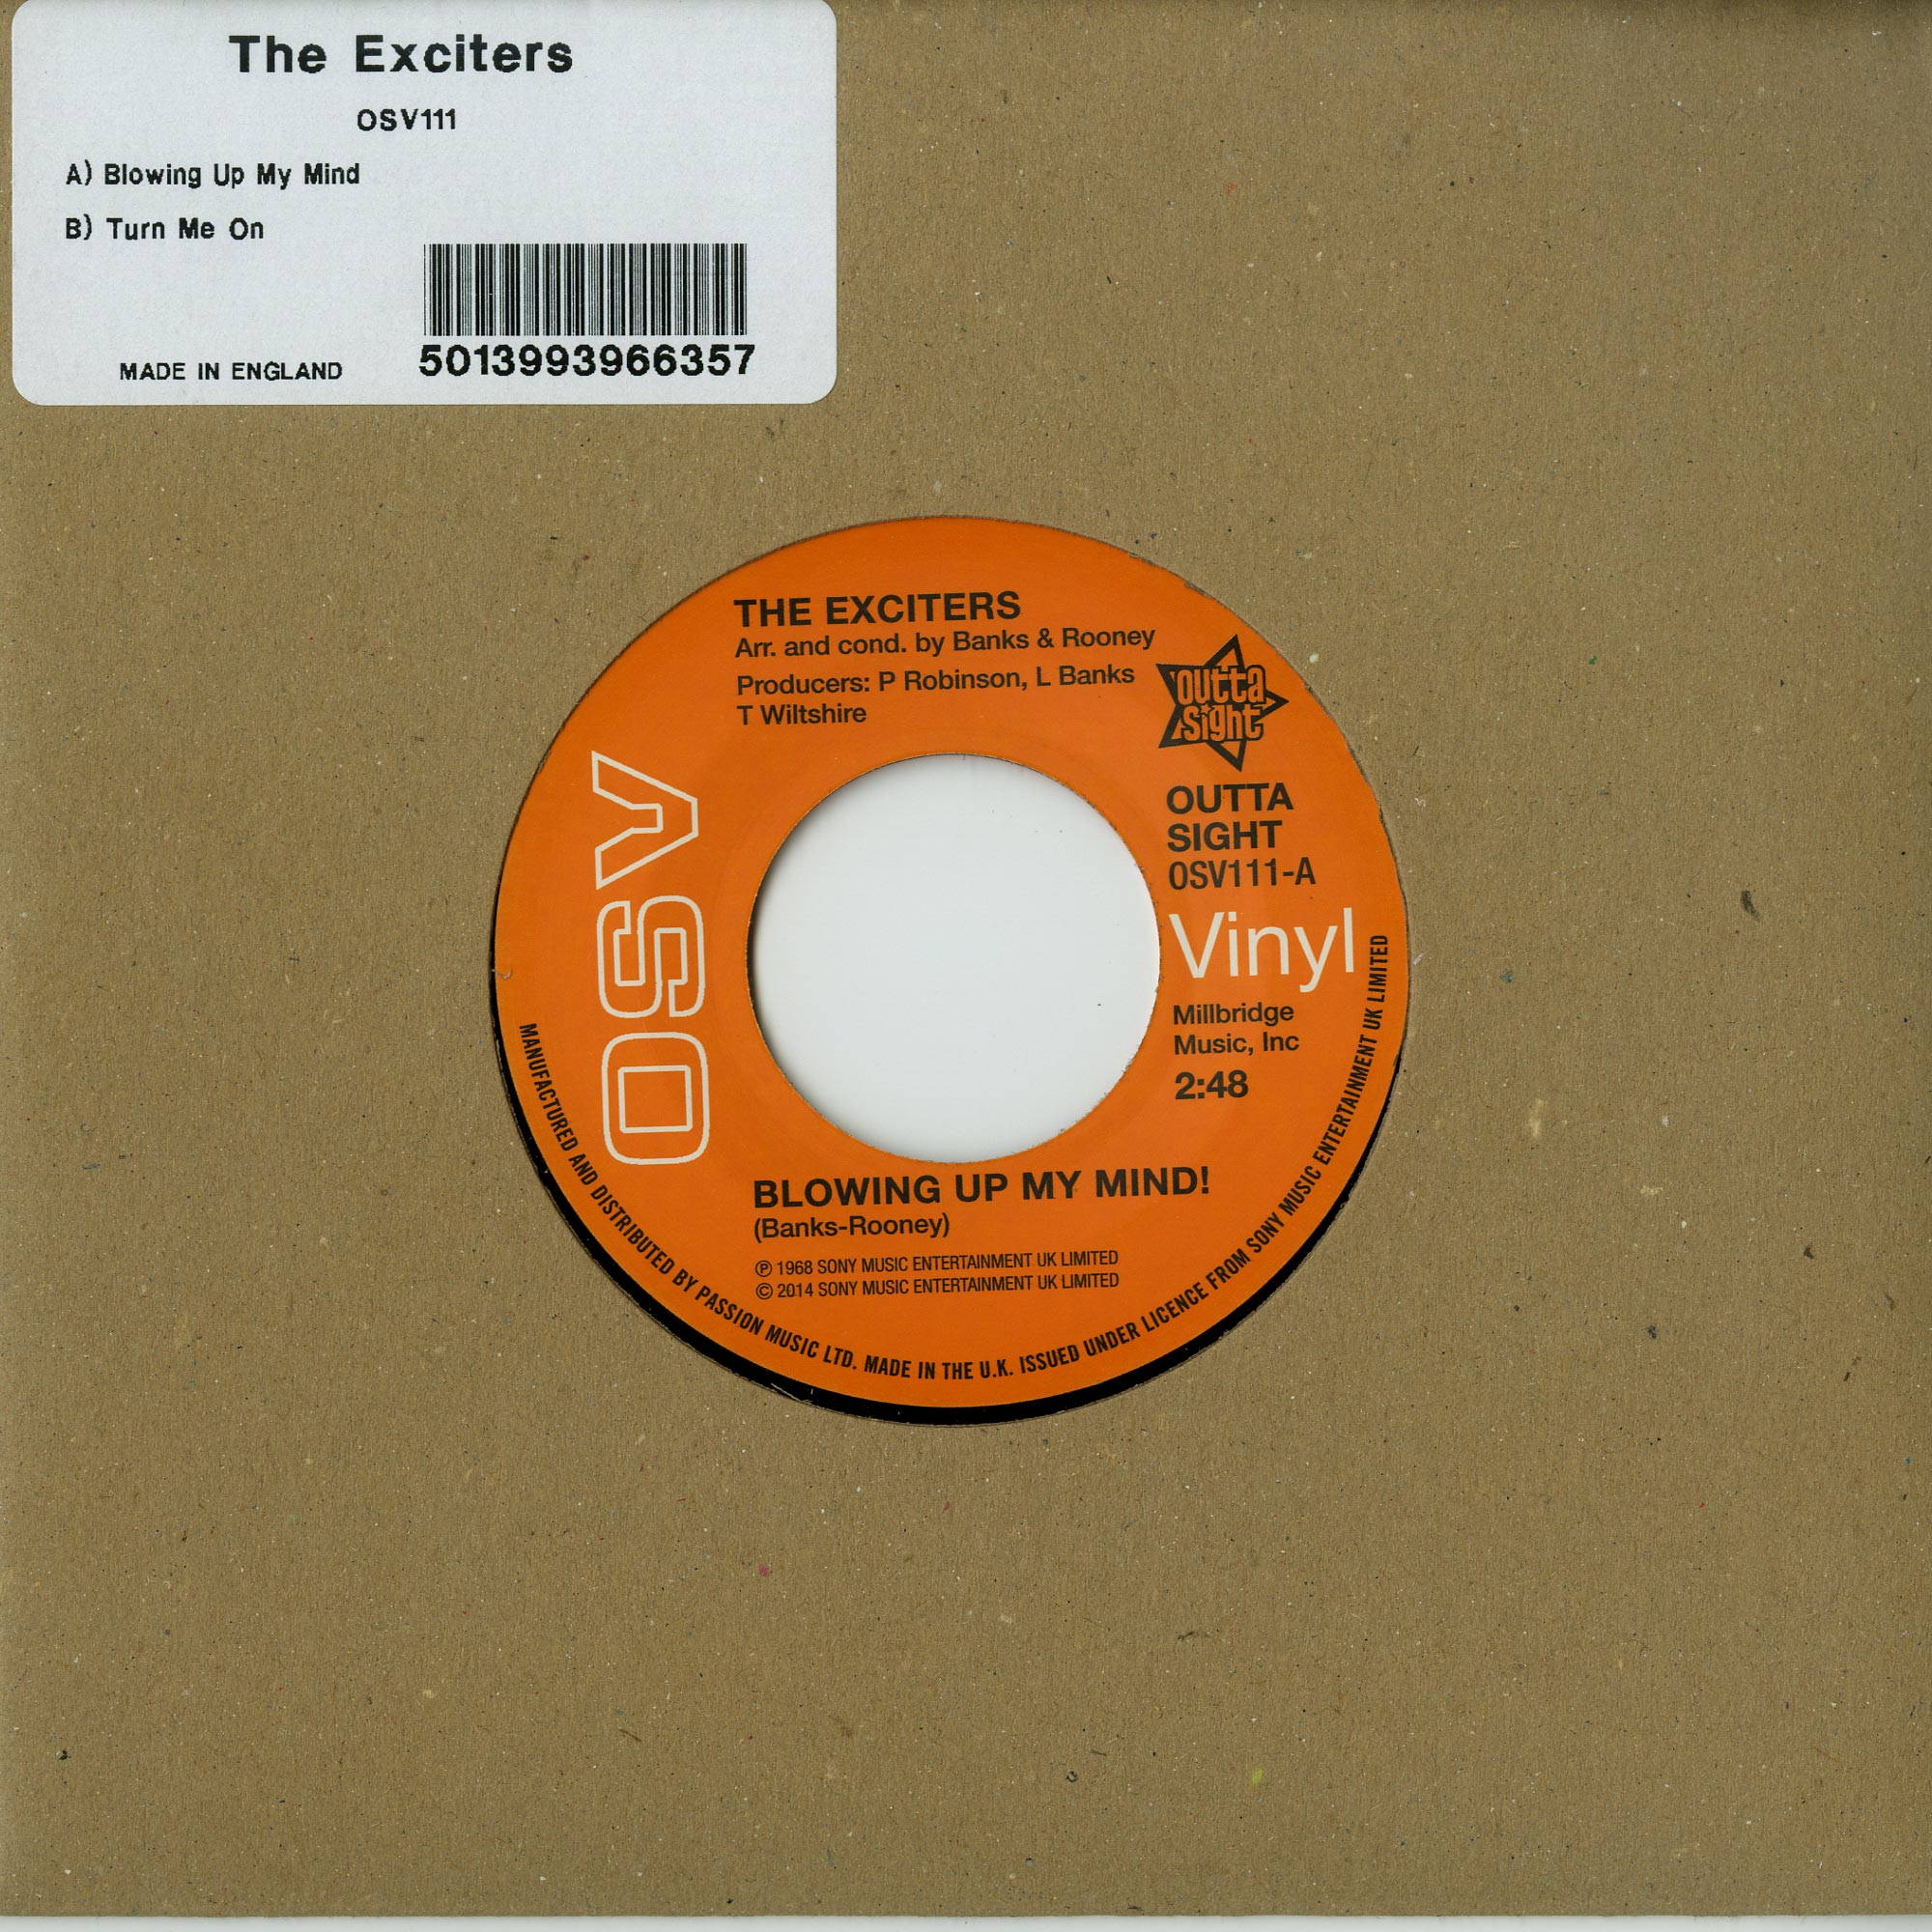 The Exciters - BLOWING UP MY MIND